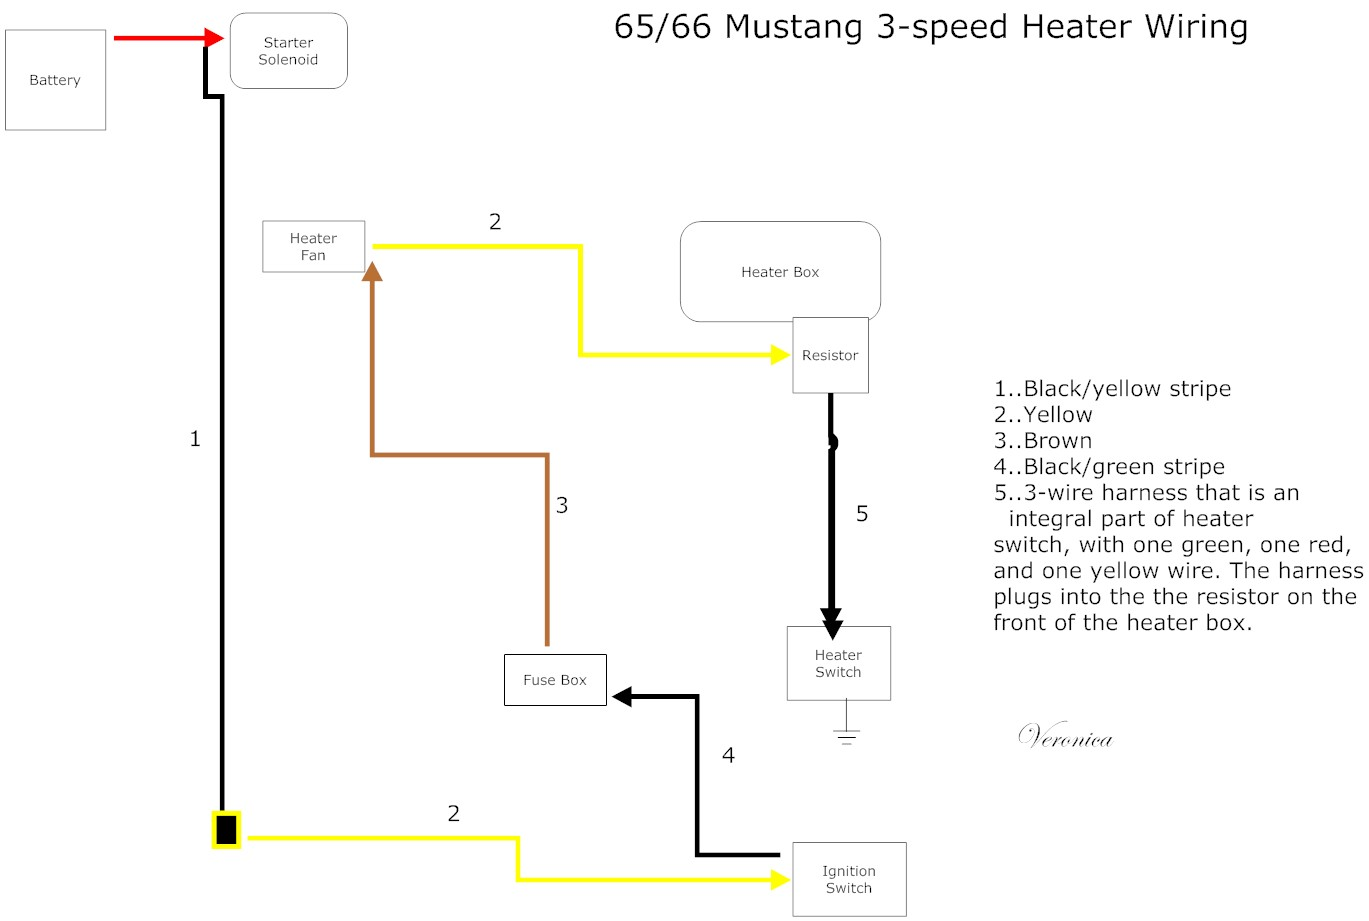 66 mustang heater wiring diagram | note-result wiring diagram -  note-result.ilcasaledelbarone.it  ilcasaledelbarone.it